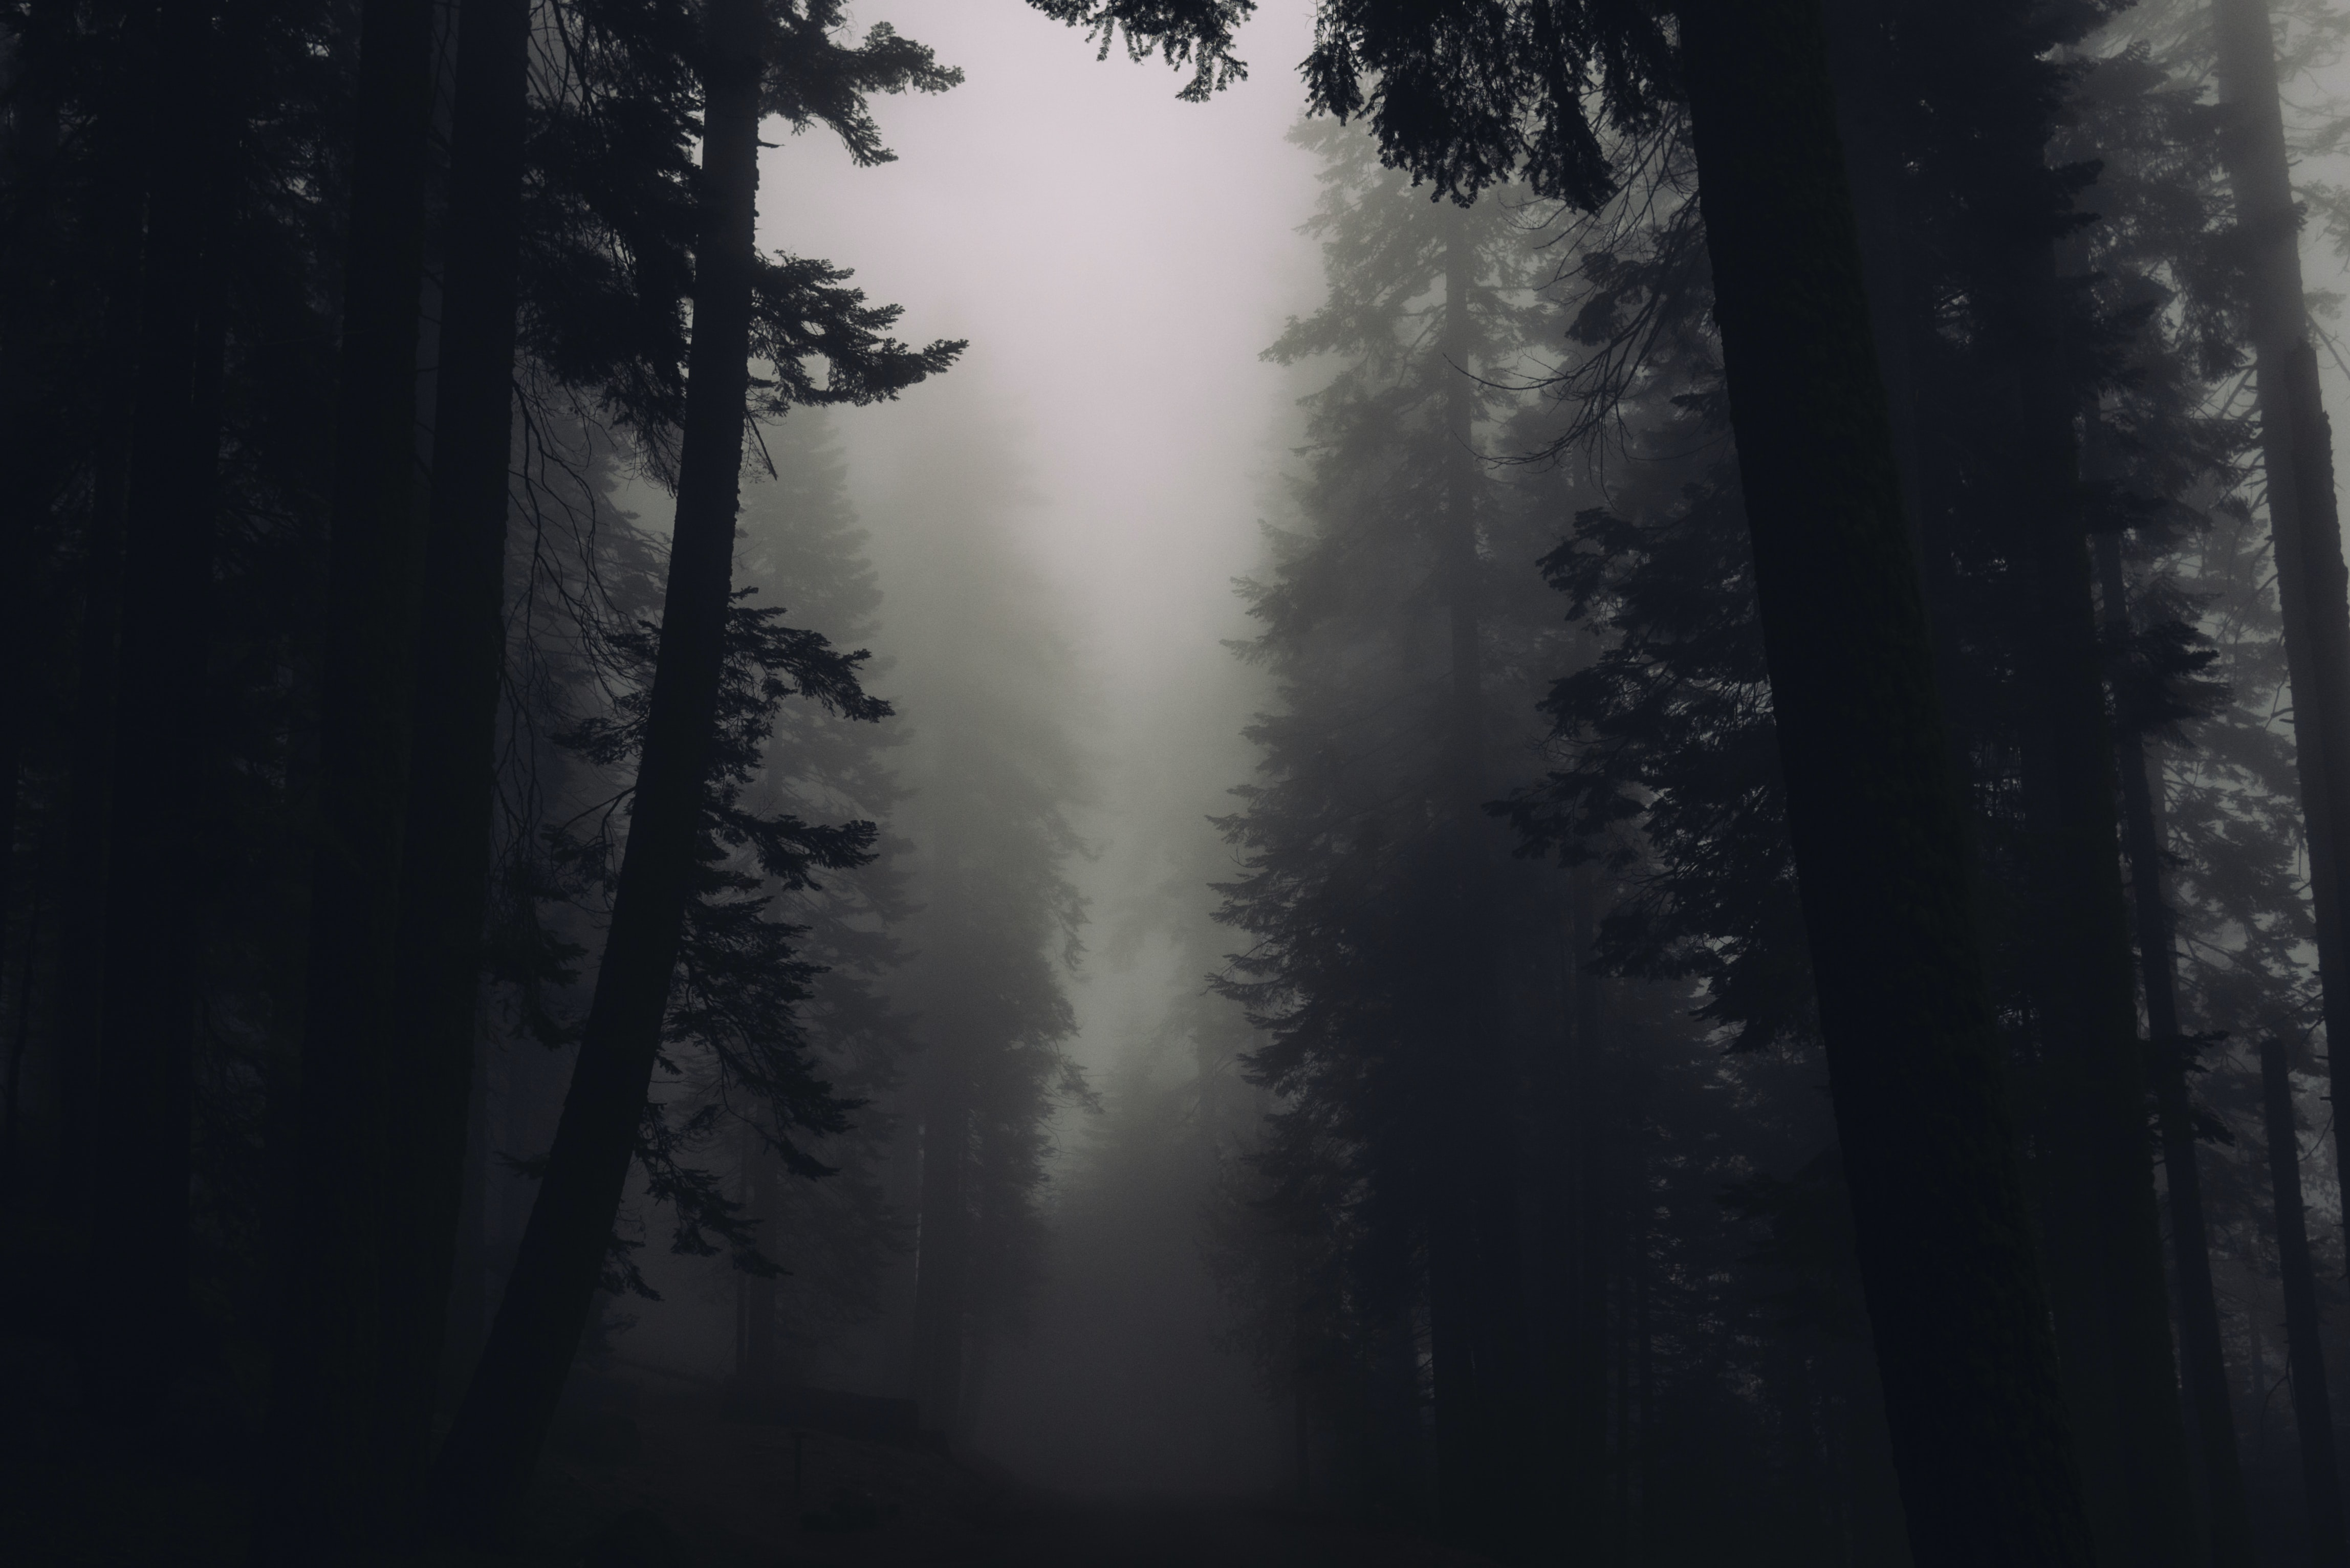 Silhouettes of trees in a misty forest in Sequoia National Park